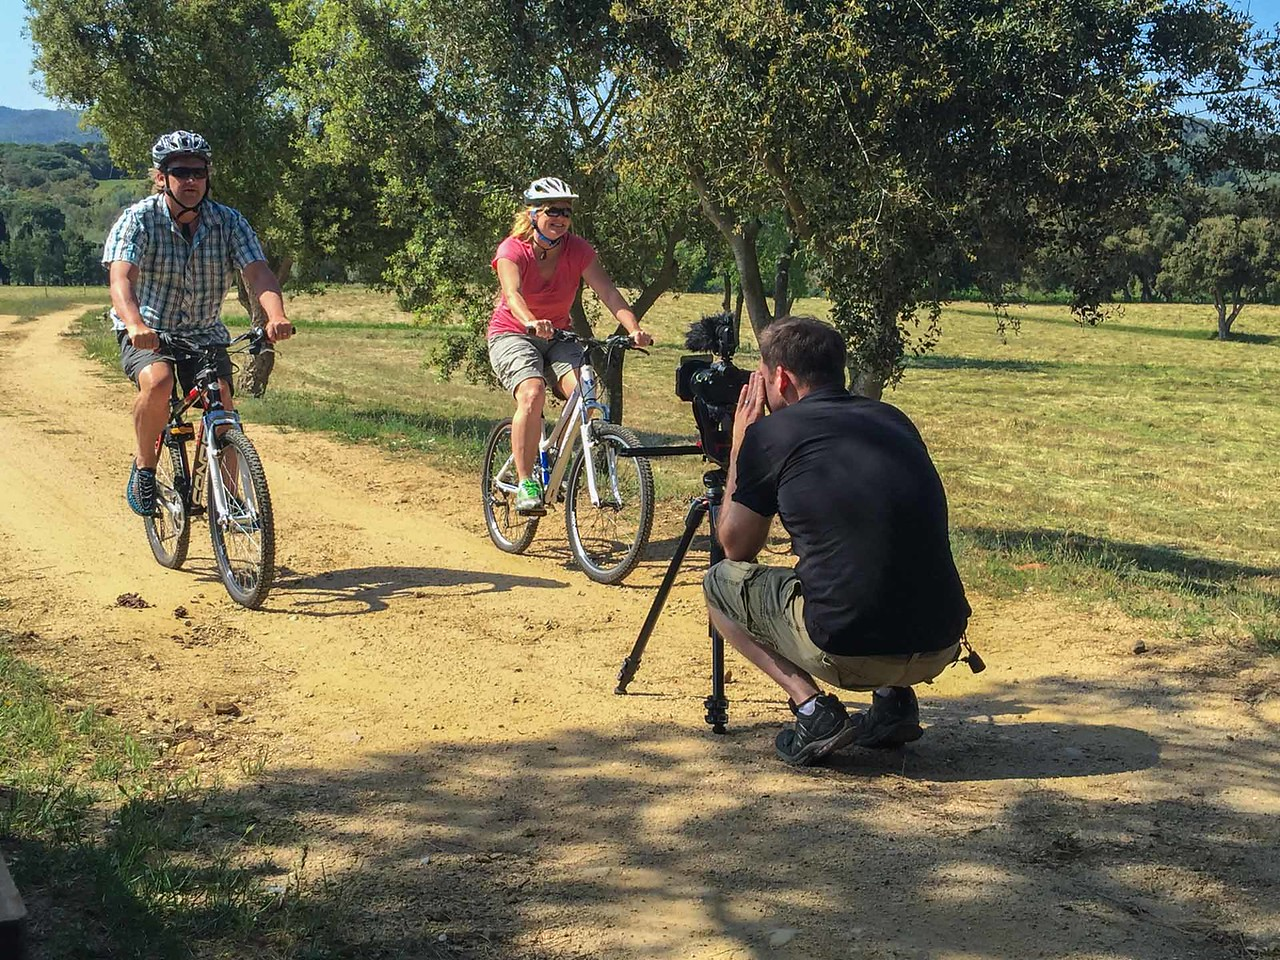 Riding bikes on the extensive trail network in Costa Brava.